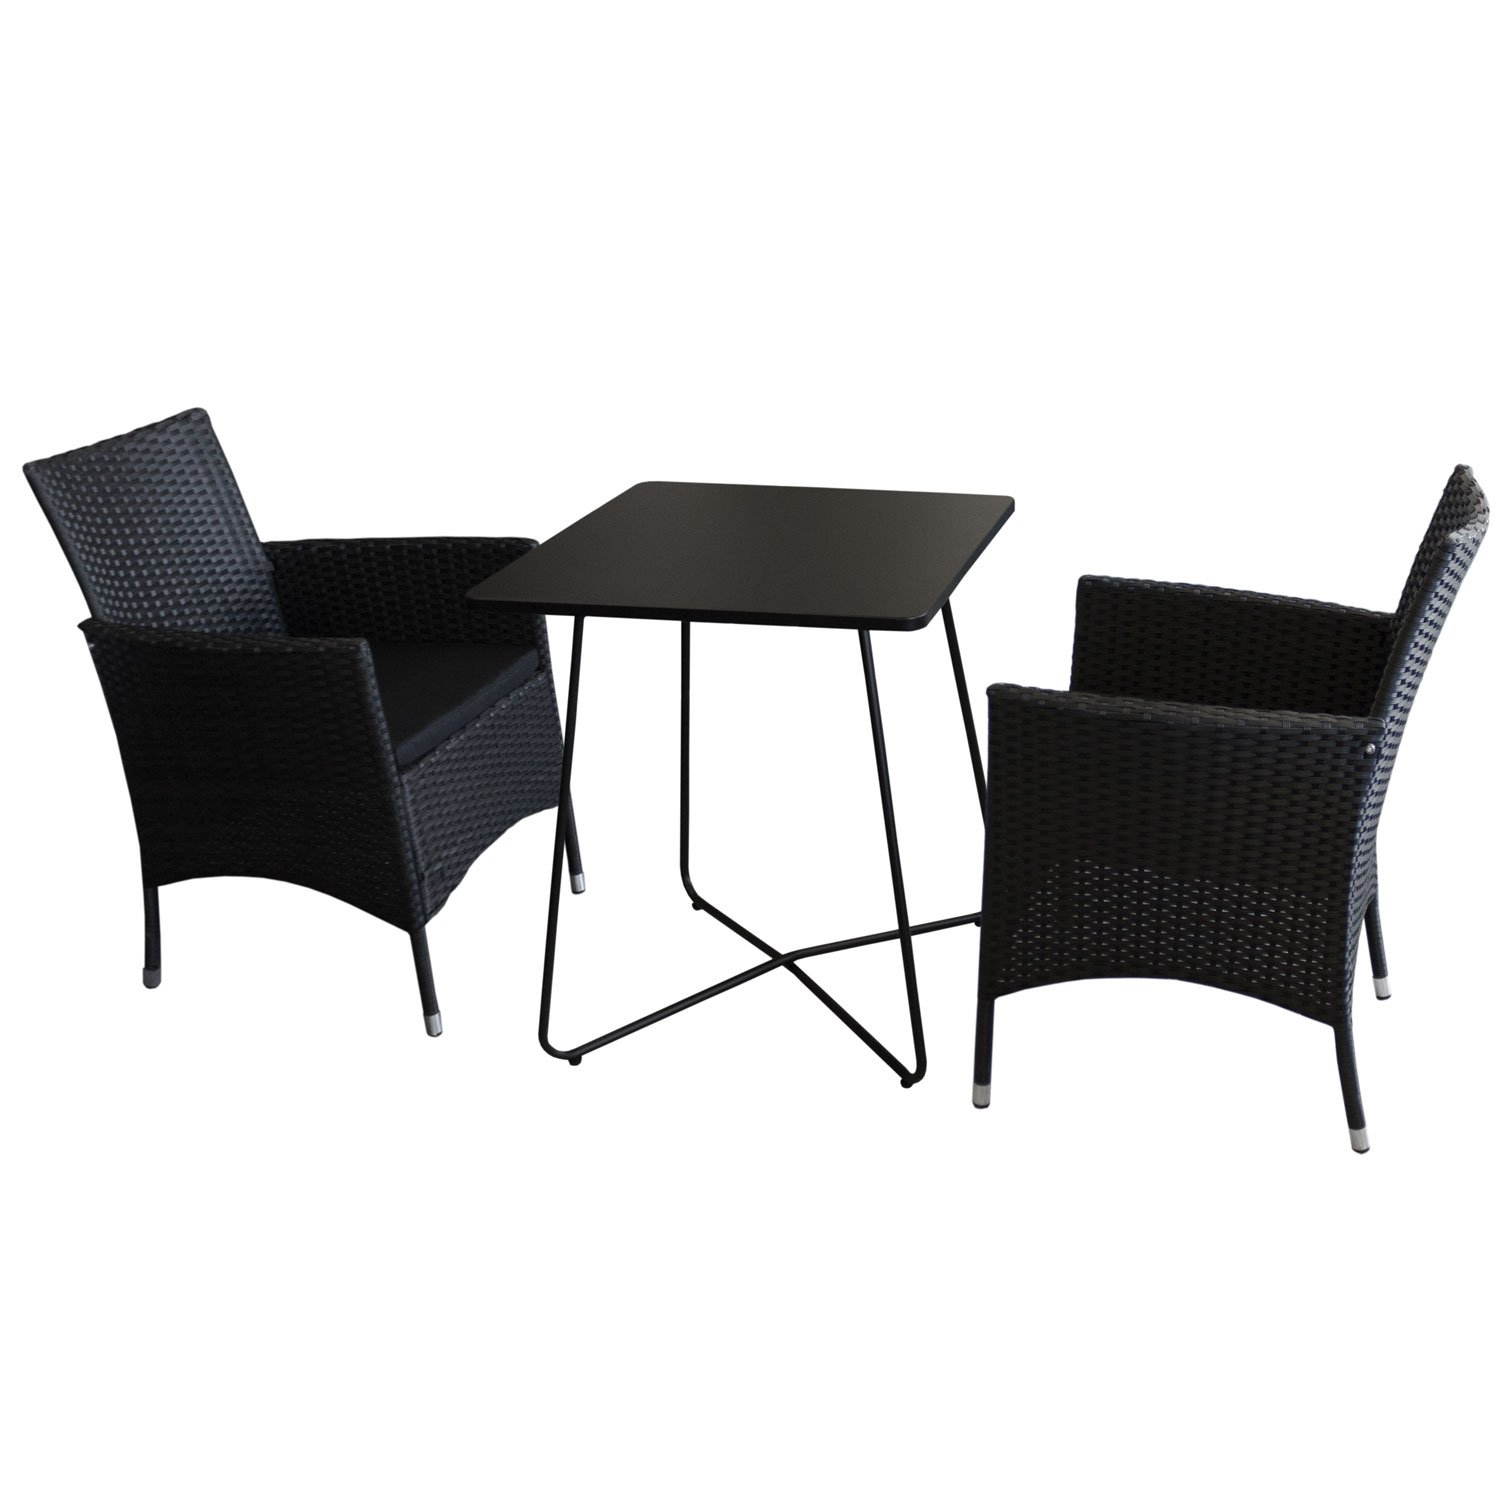 3tlg bistrom bel set bistrotisch metall 60x60cm schwarz 2x rattansessel stapelbar inkl. Black Bedroom Furniture Sets. Home Design Ideas